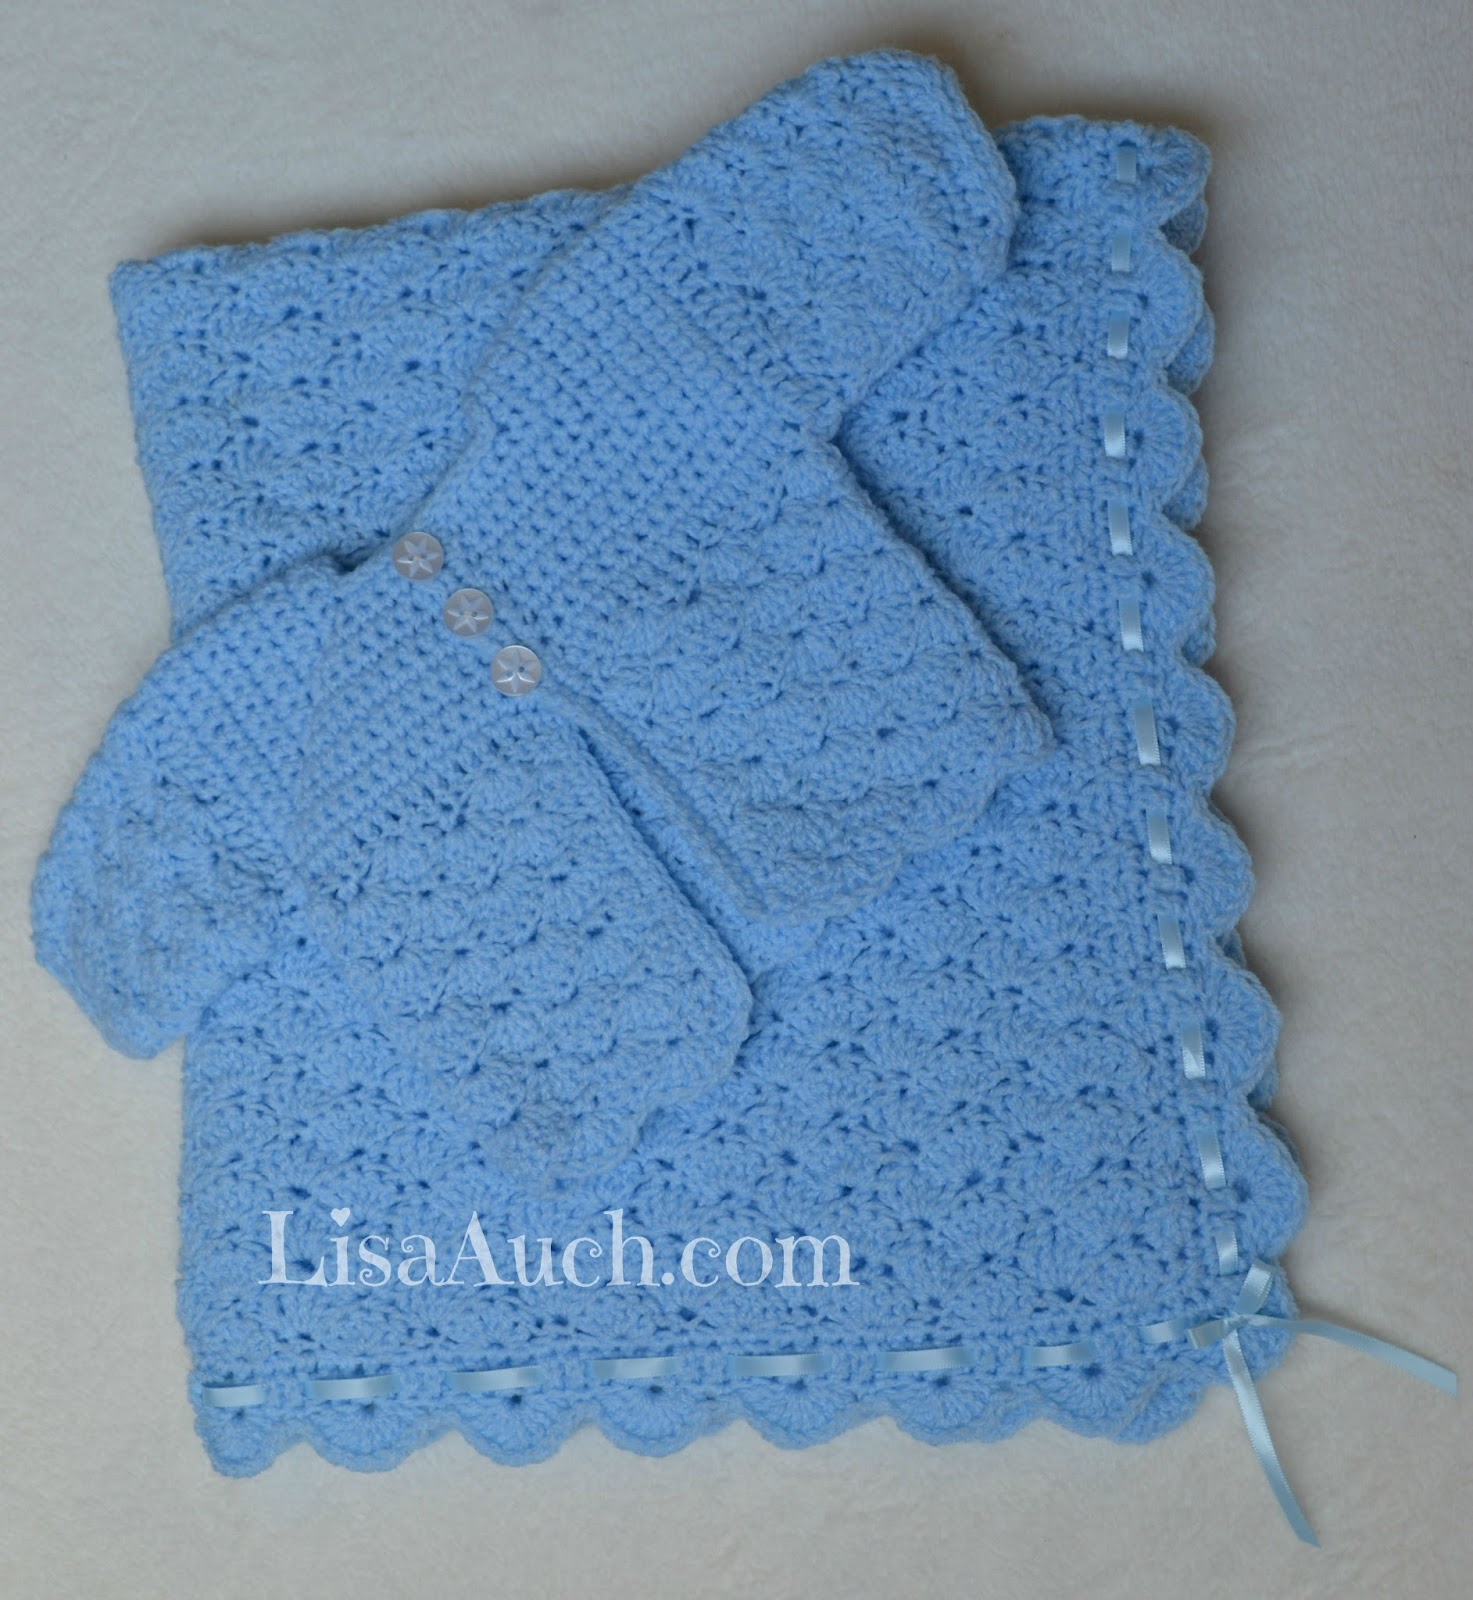 Free Crochet Patterns for Babies Cardigan and Blanket Set (The ...